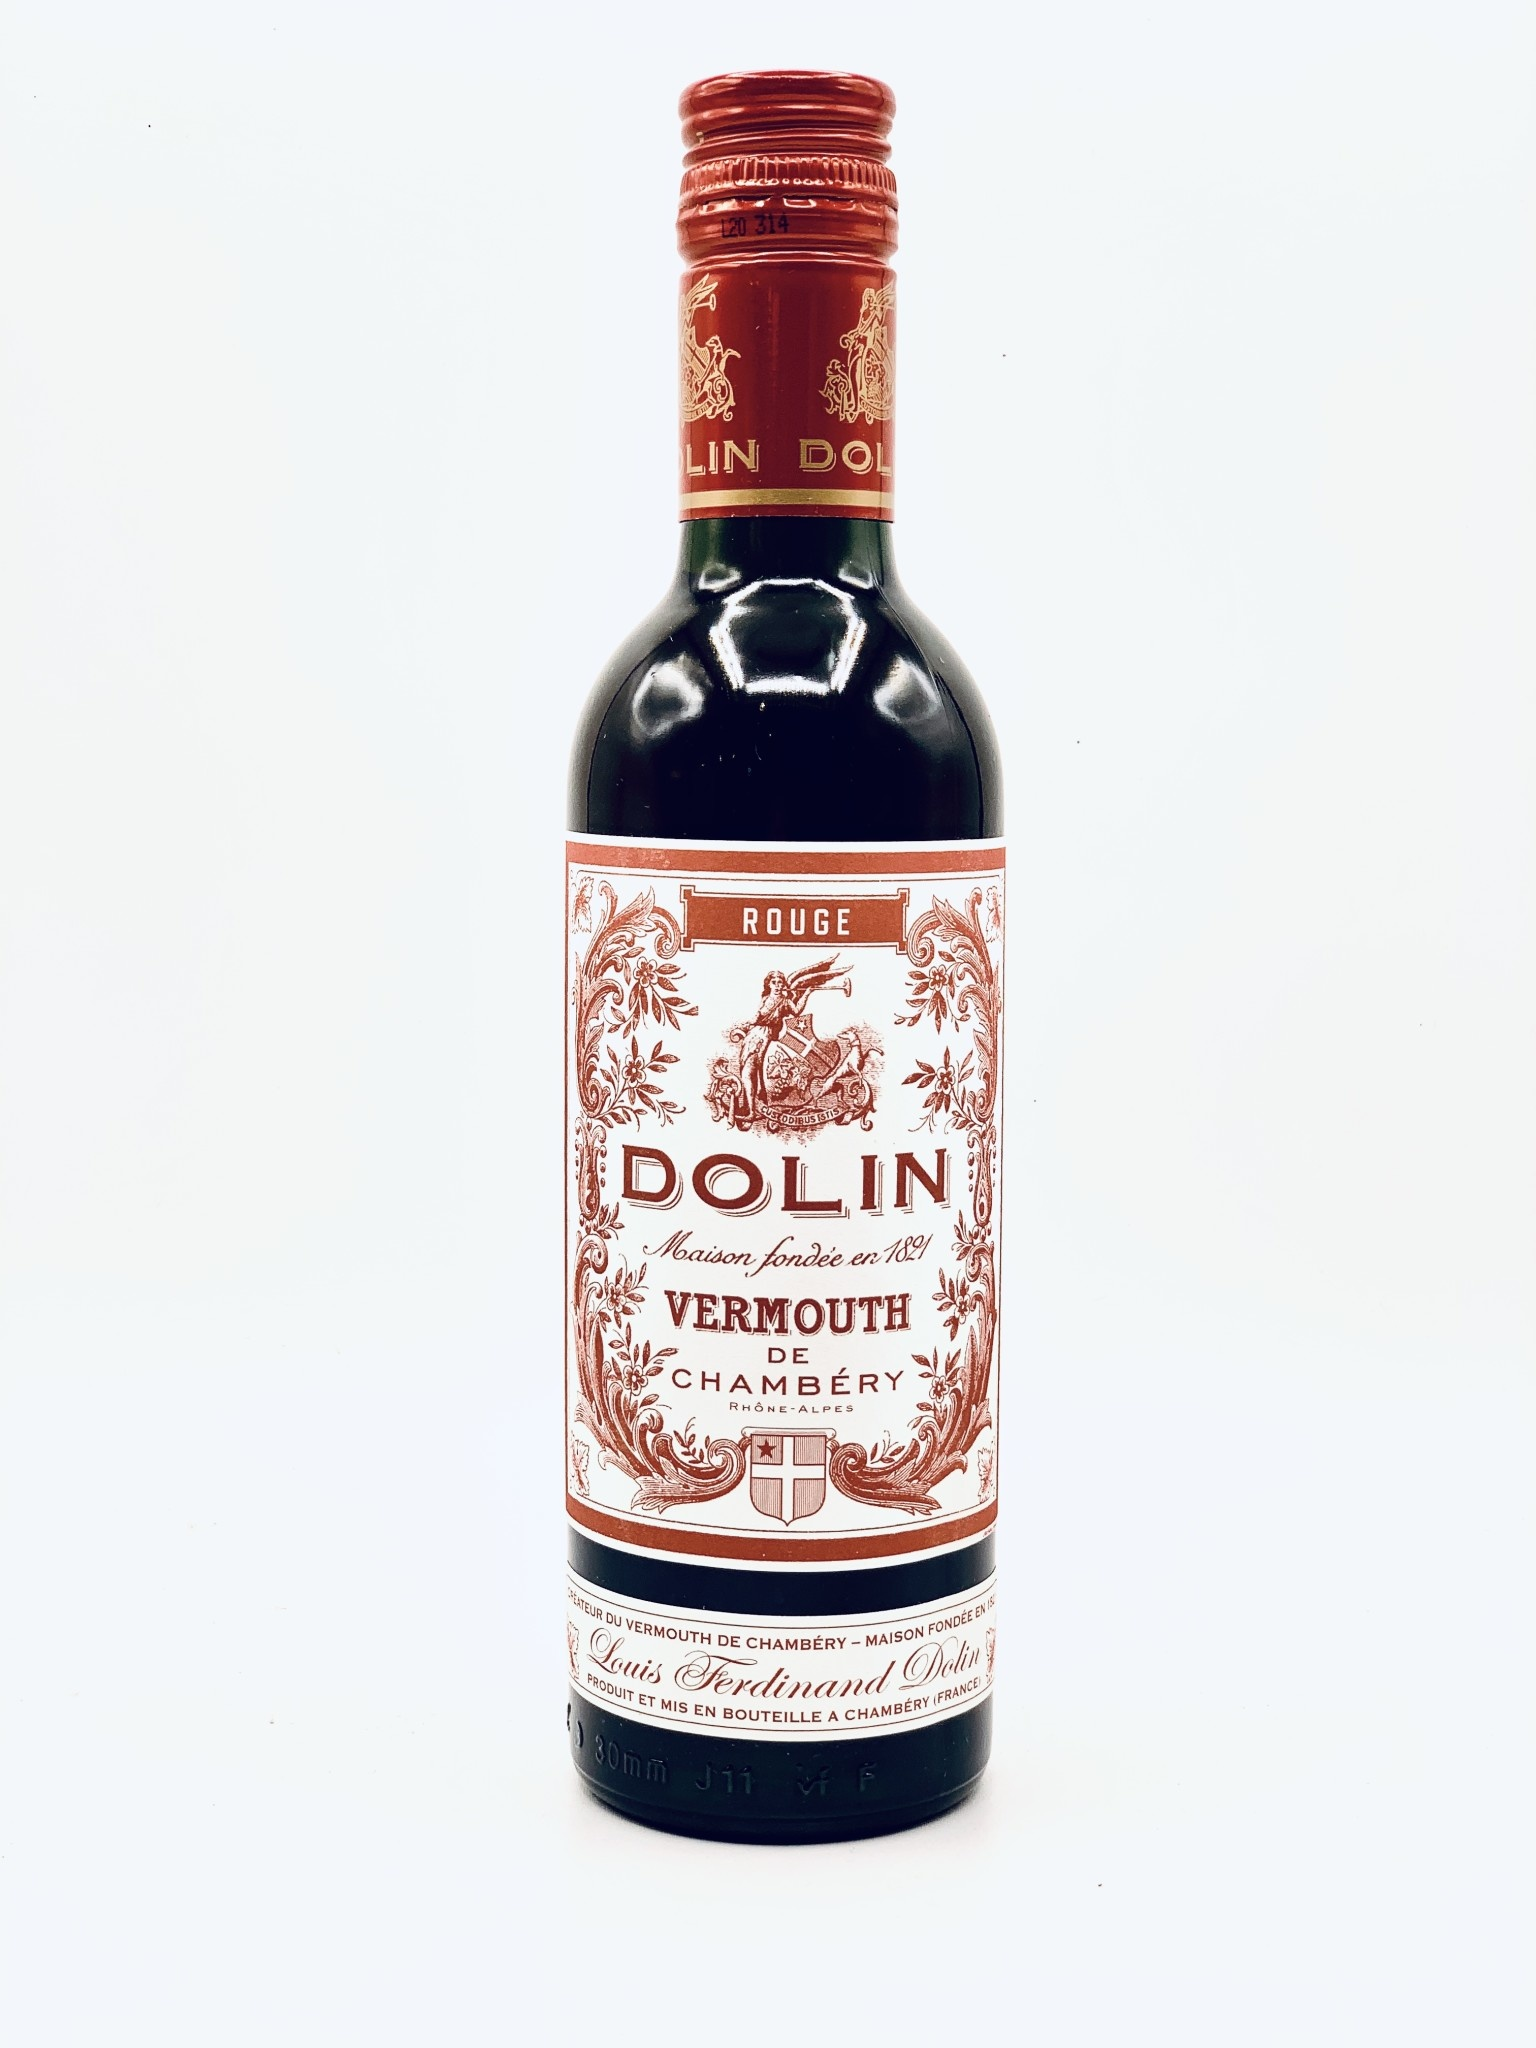 Dolin Vermouth de Chambery A.O.C. Rouge 375ml (32 Proof)